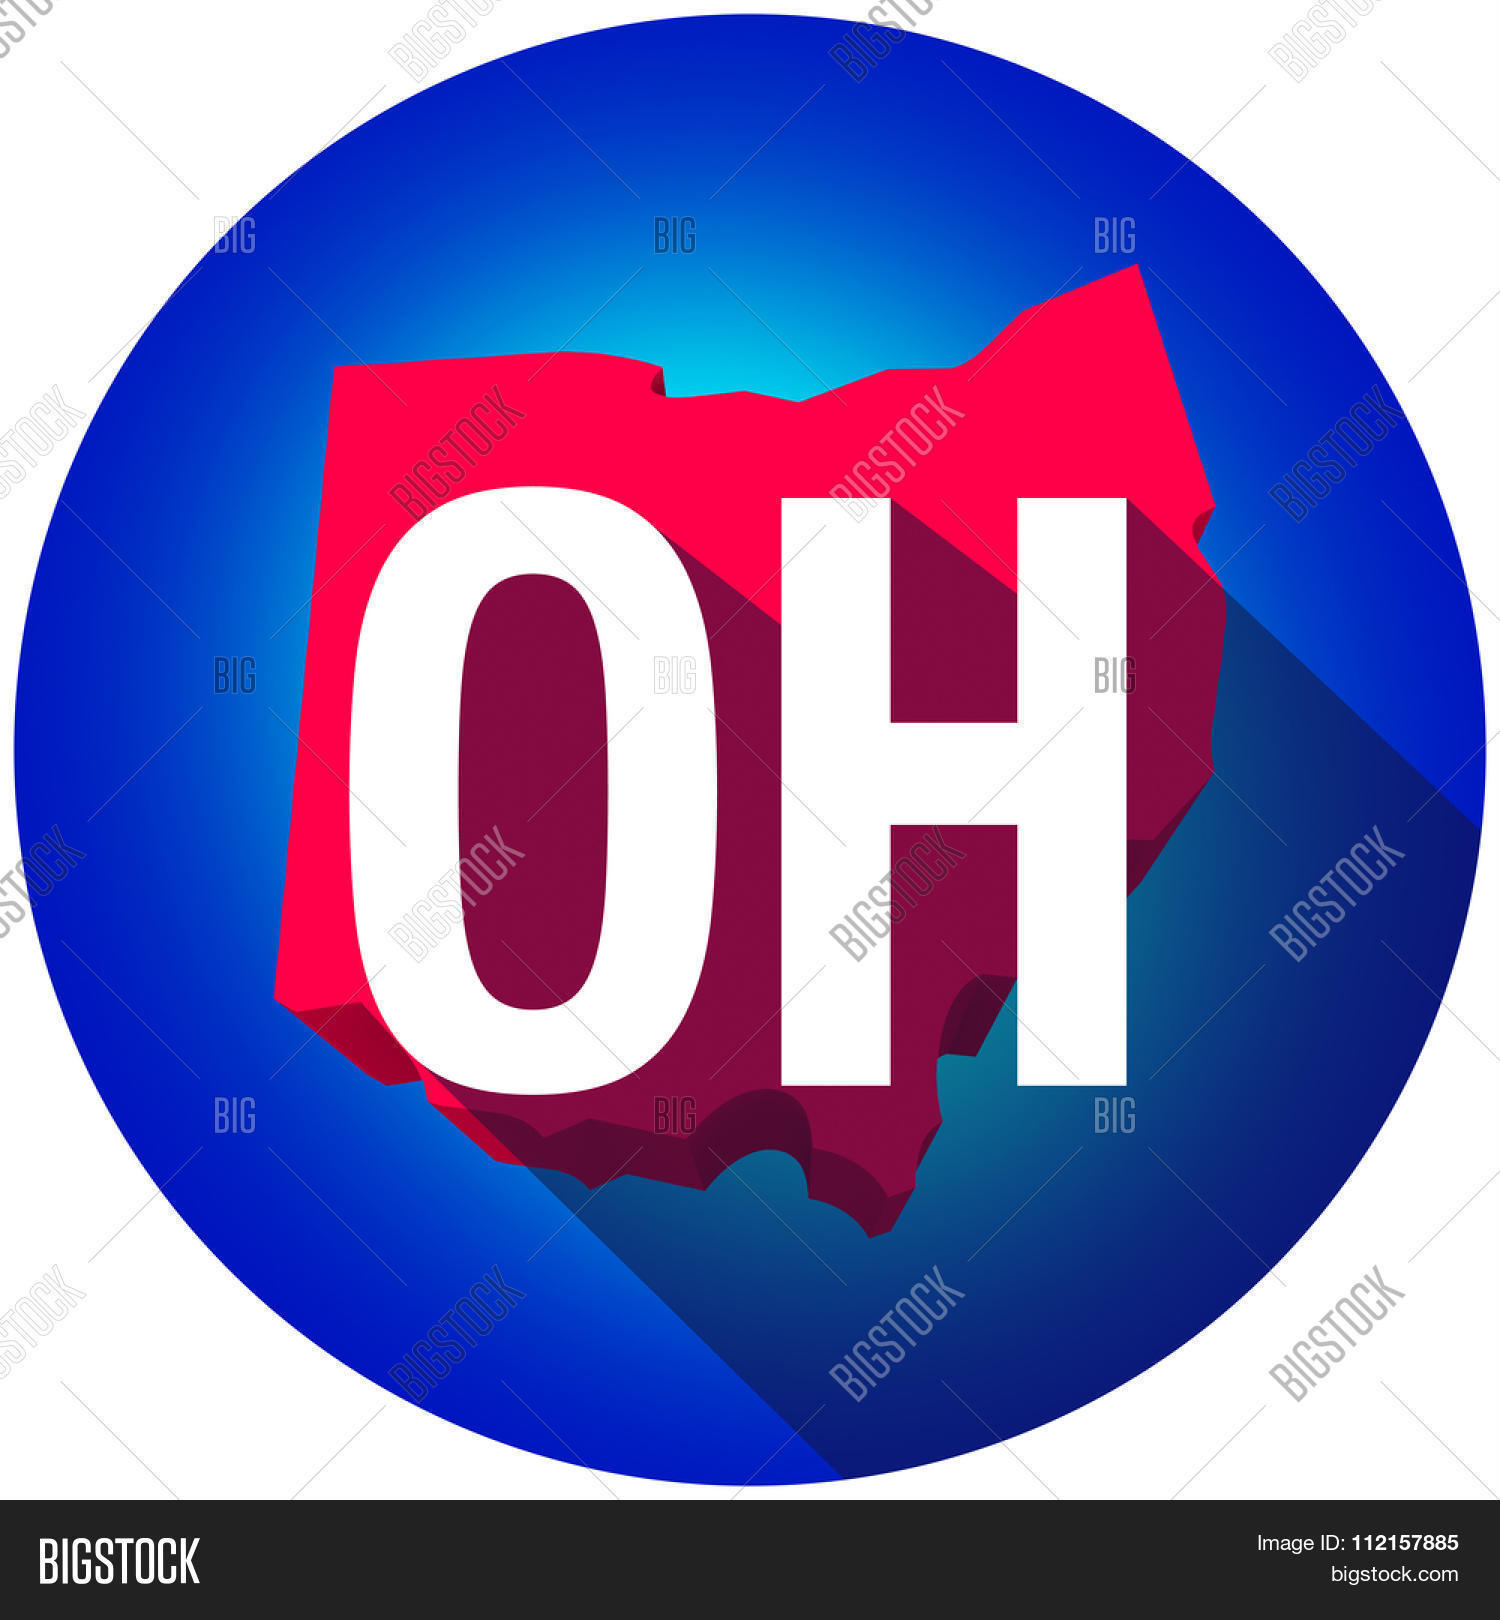 ohio oh letters on a 3d map of the state as part of the usa united